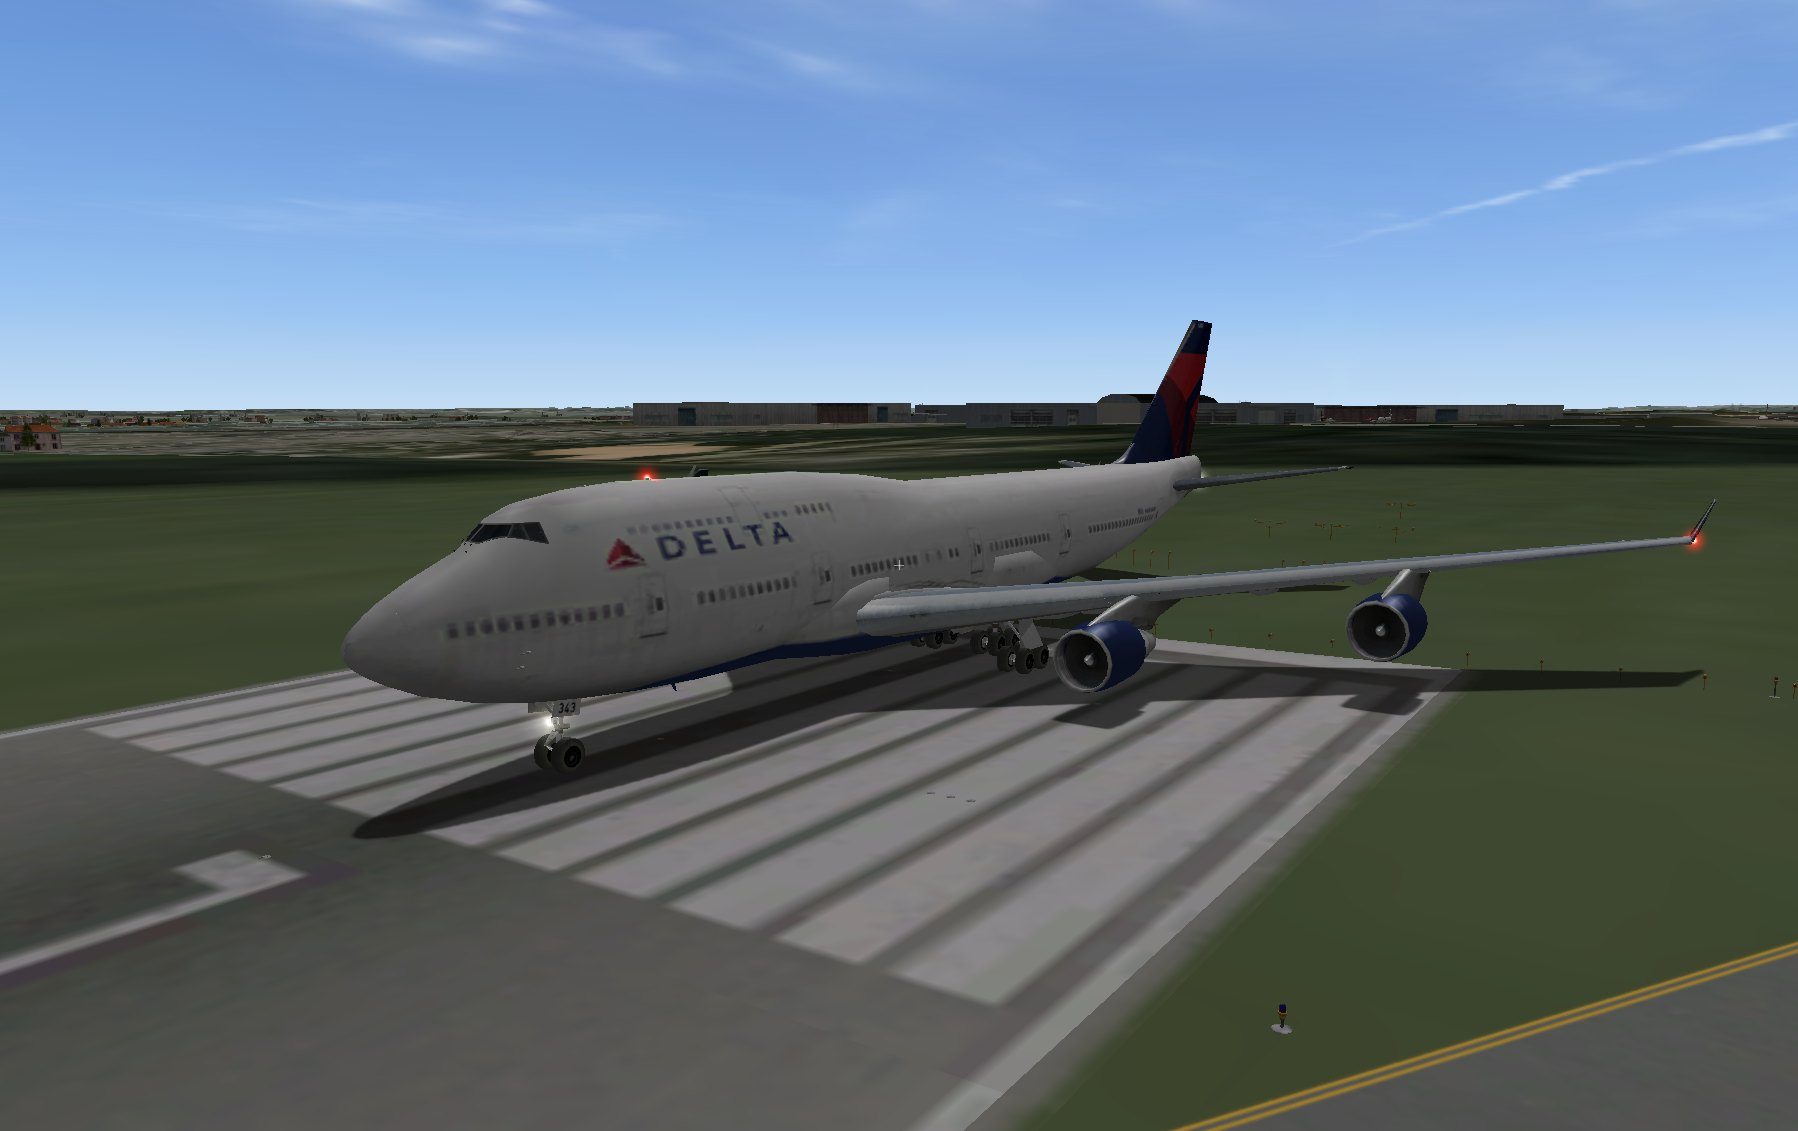 Delta 747-400 - Aircraft Skins - Liveries - X-Plane Org Forum